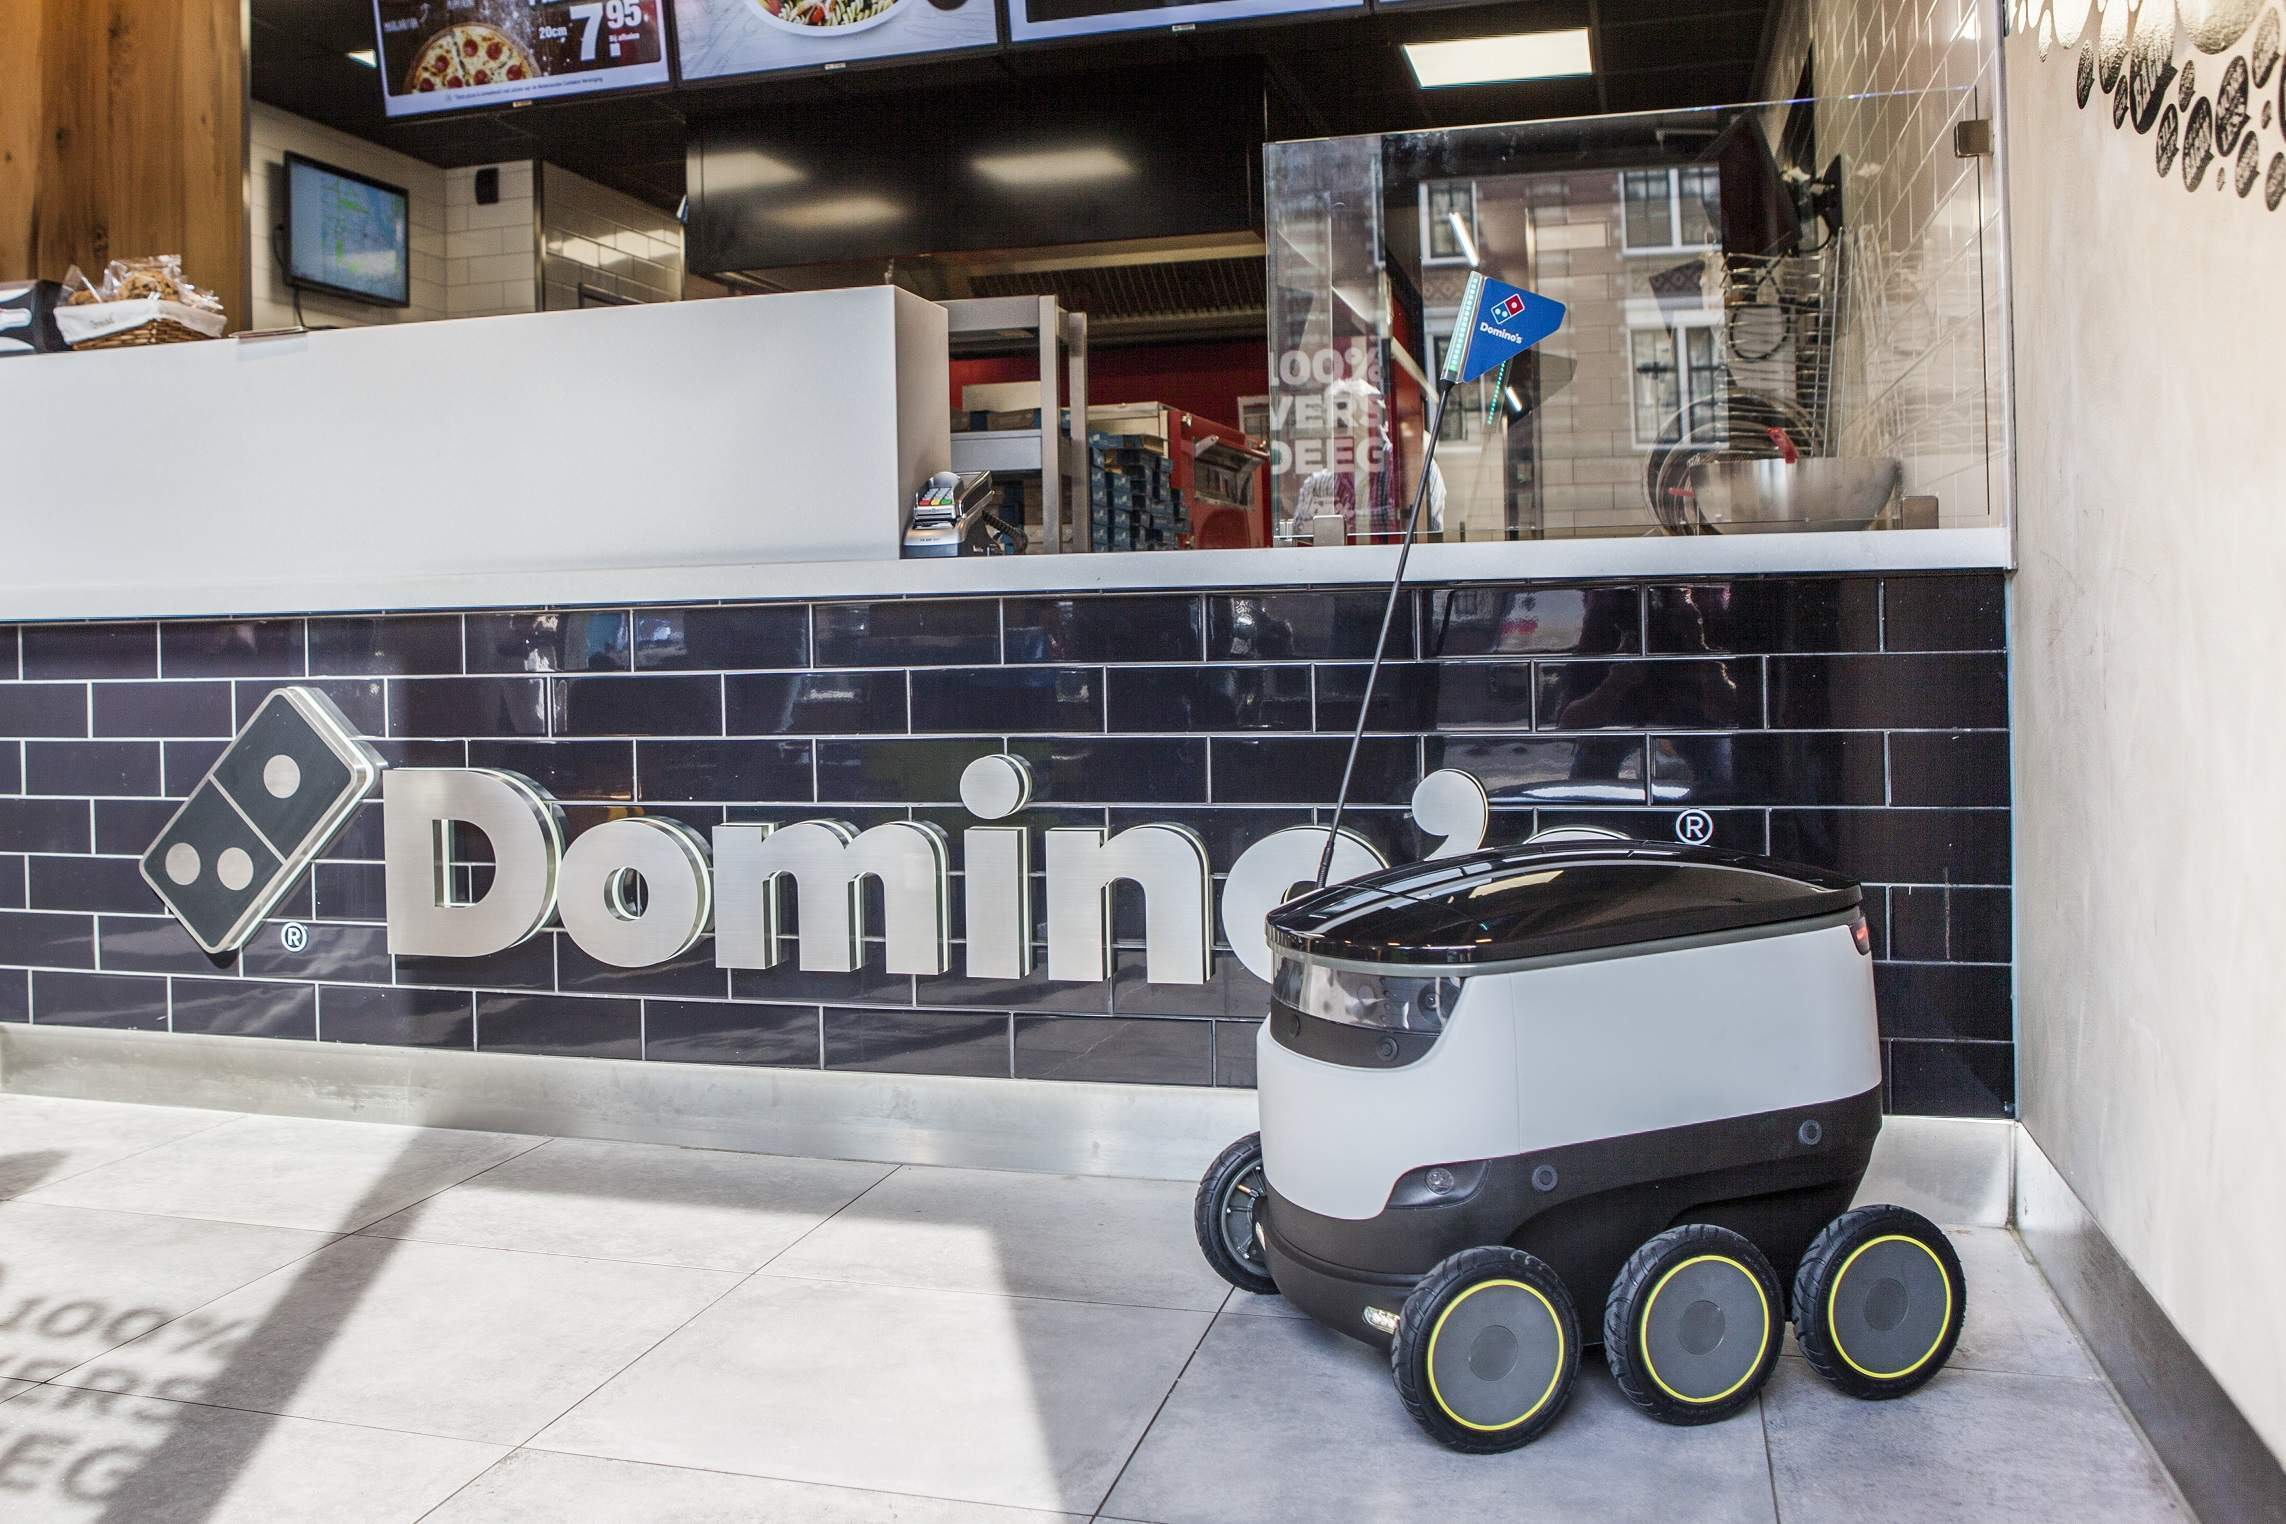 Autonomous robots are now delivering Domino's Pizza (in Germany)